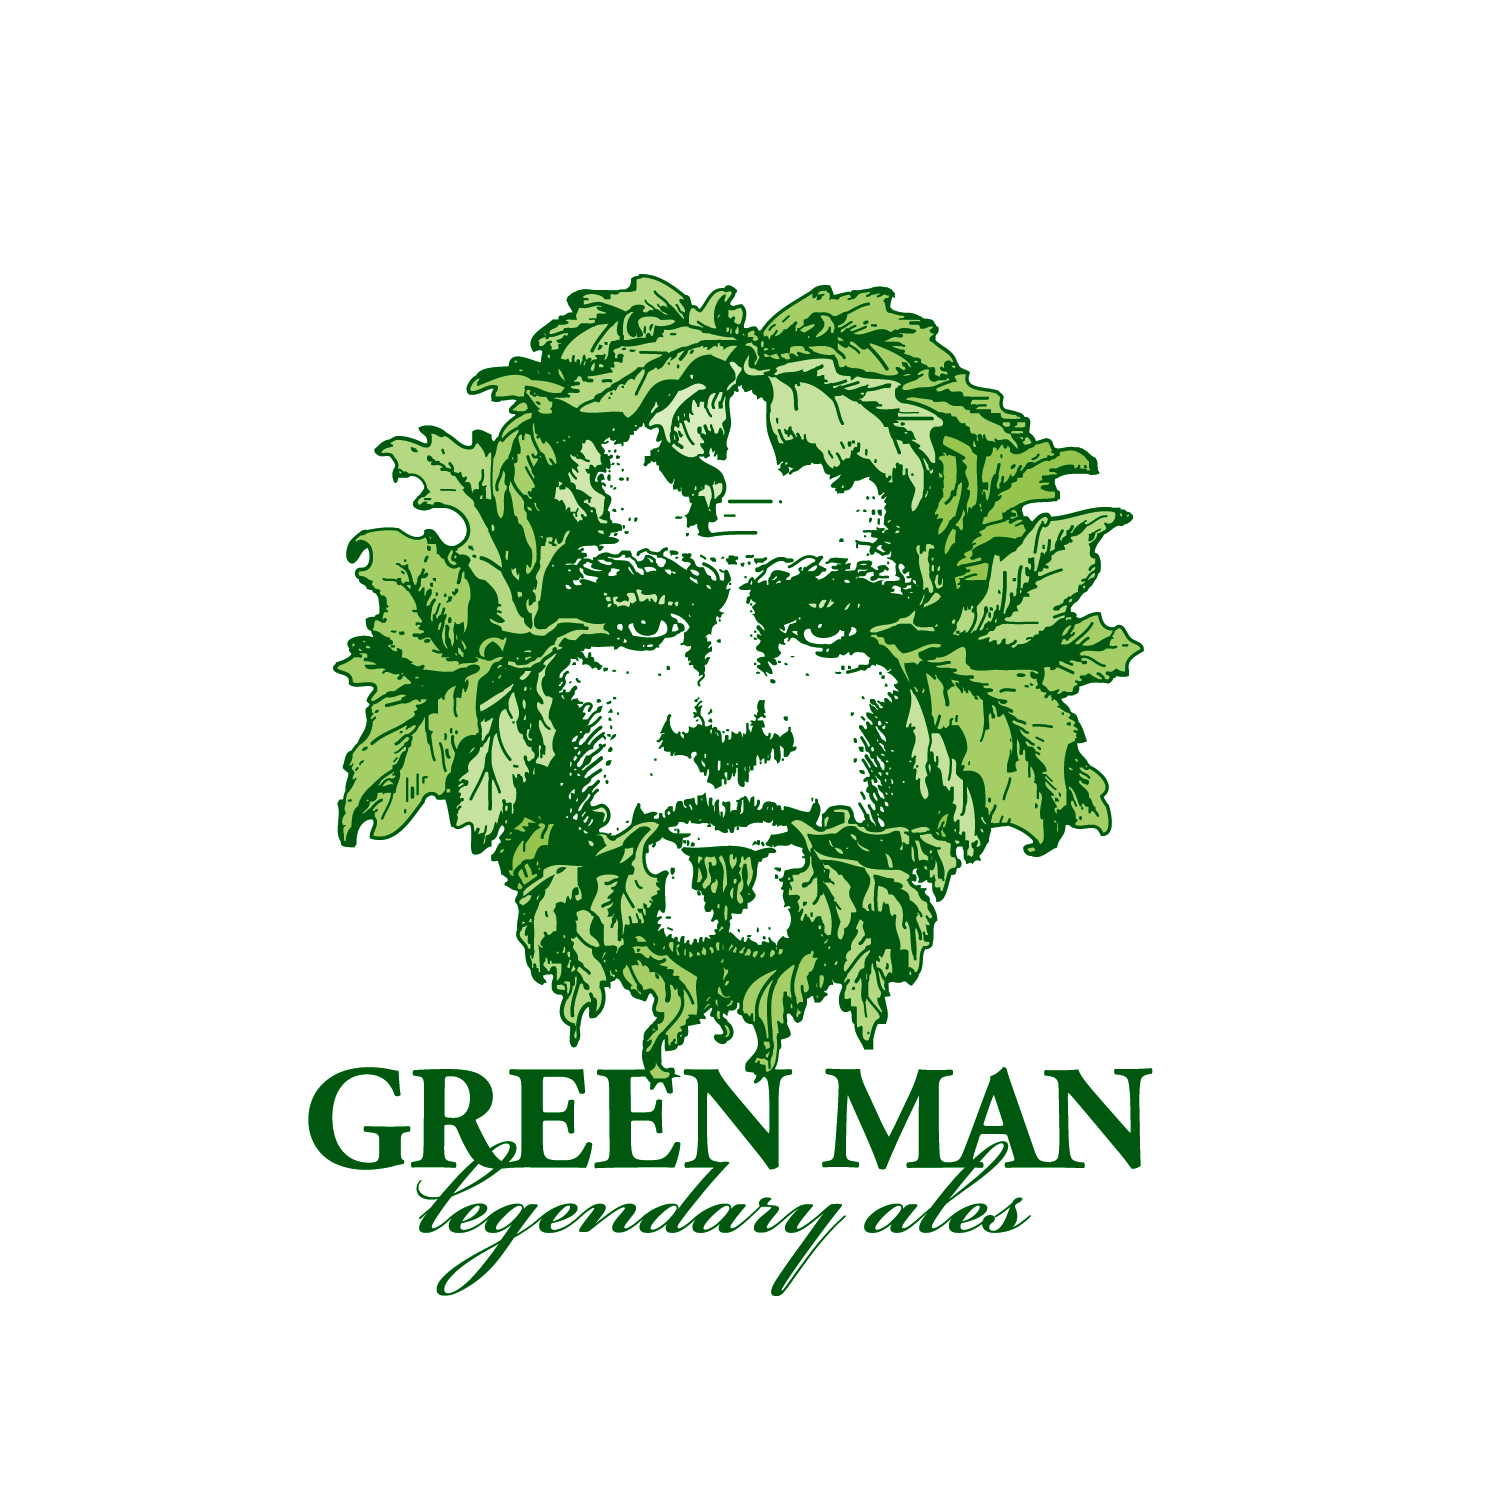 greenman_standard_2014_new.jpg